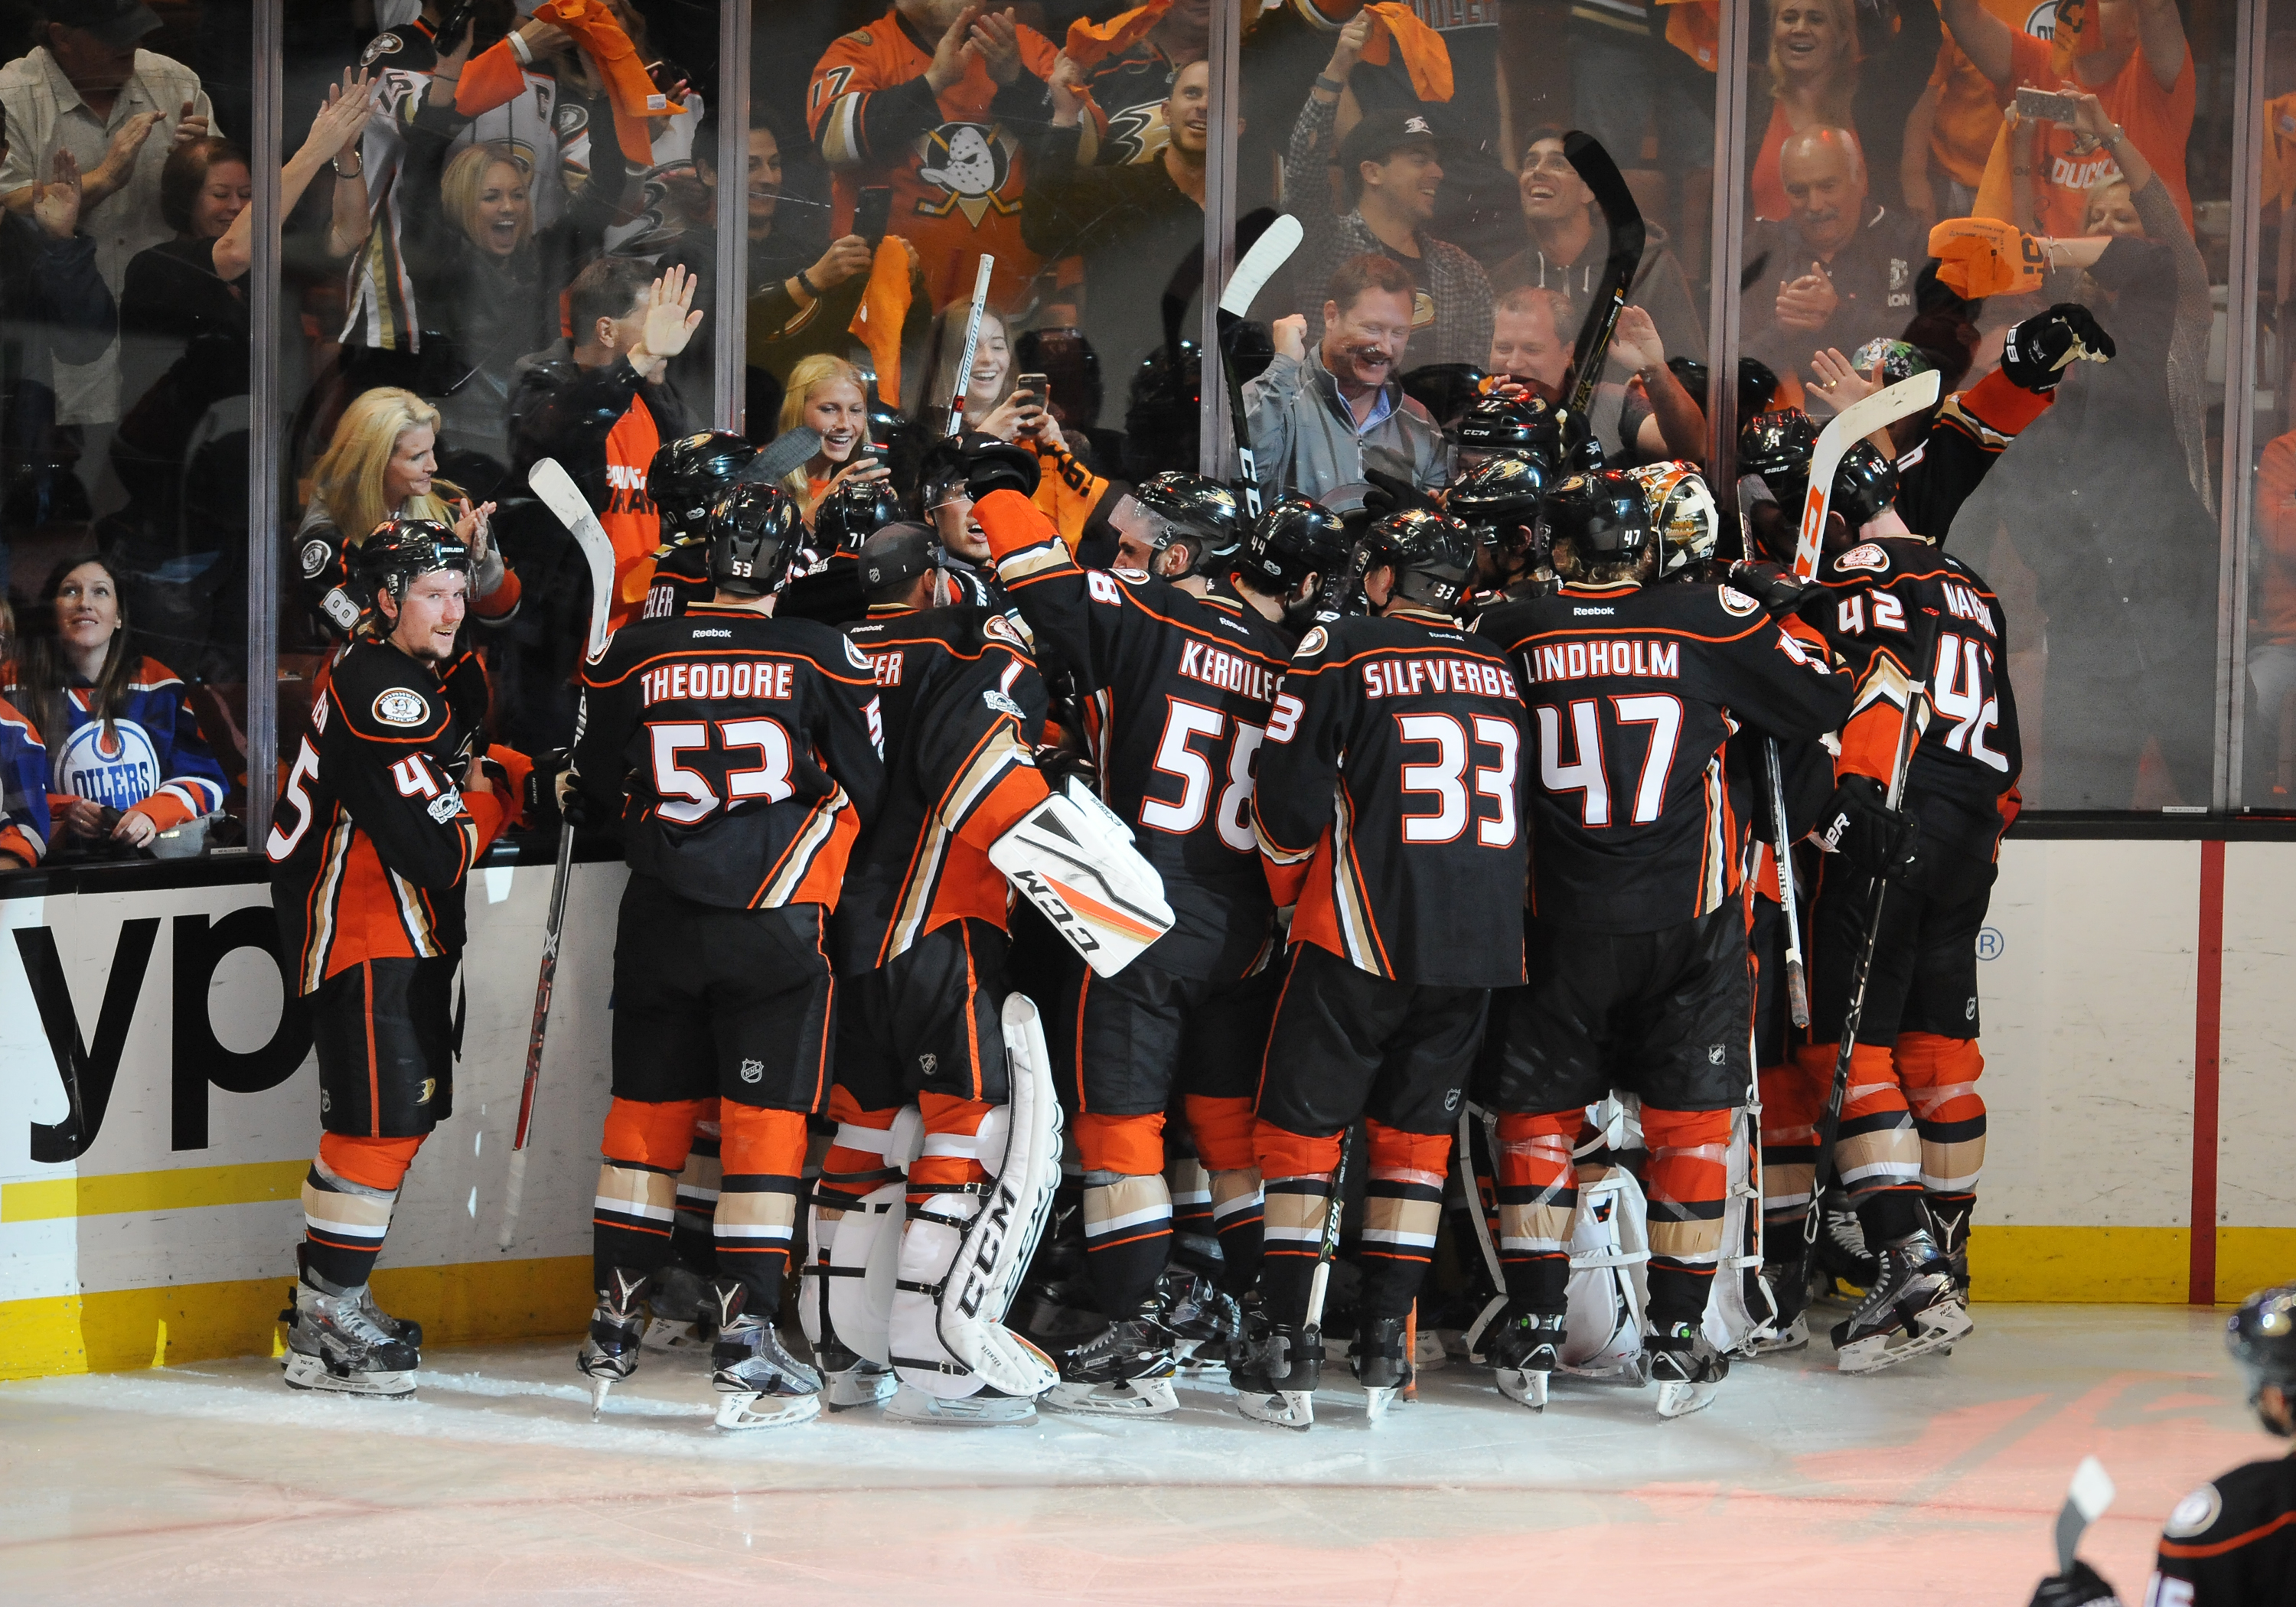 ANAHEIM, CA - MAY 05: Anaheim Ducks rightwing Corey Perry (10) is surrounded by Ducks teammates and fans after Perry scored the game winning goal in the second overtime period to defeat the Edmonton Oilers 4 to 3 in game 5 of the second round of the 2017 Stanley Cup Playoffs played on May 5, 2017 at the Honda Center in Anaheim, CA.